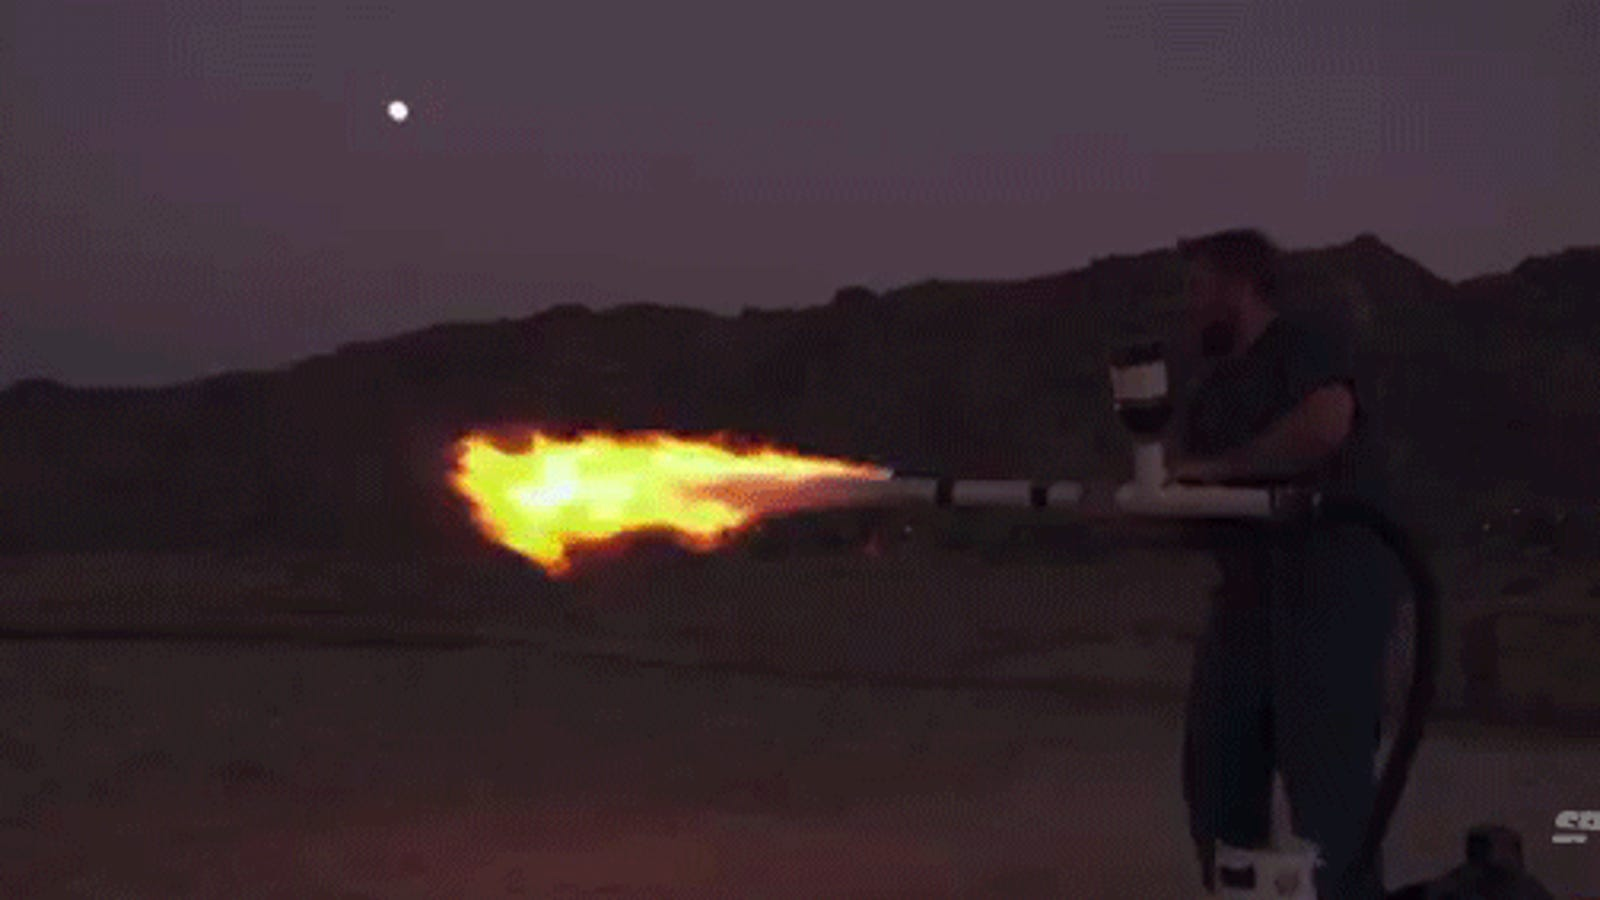 Poop-powered flamethrower can shoot out gigantic 30-foot flames